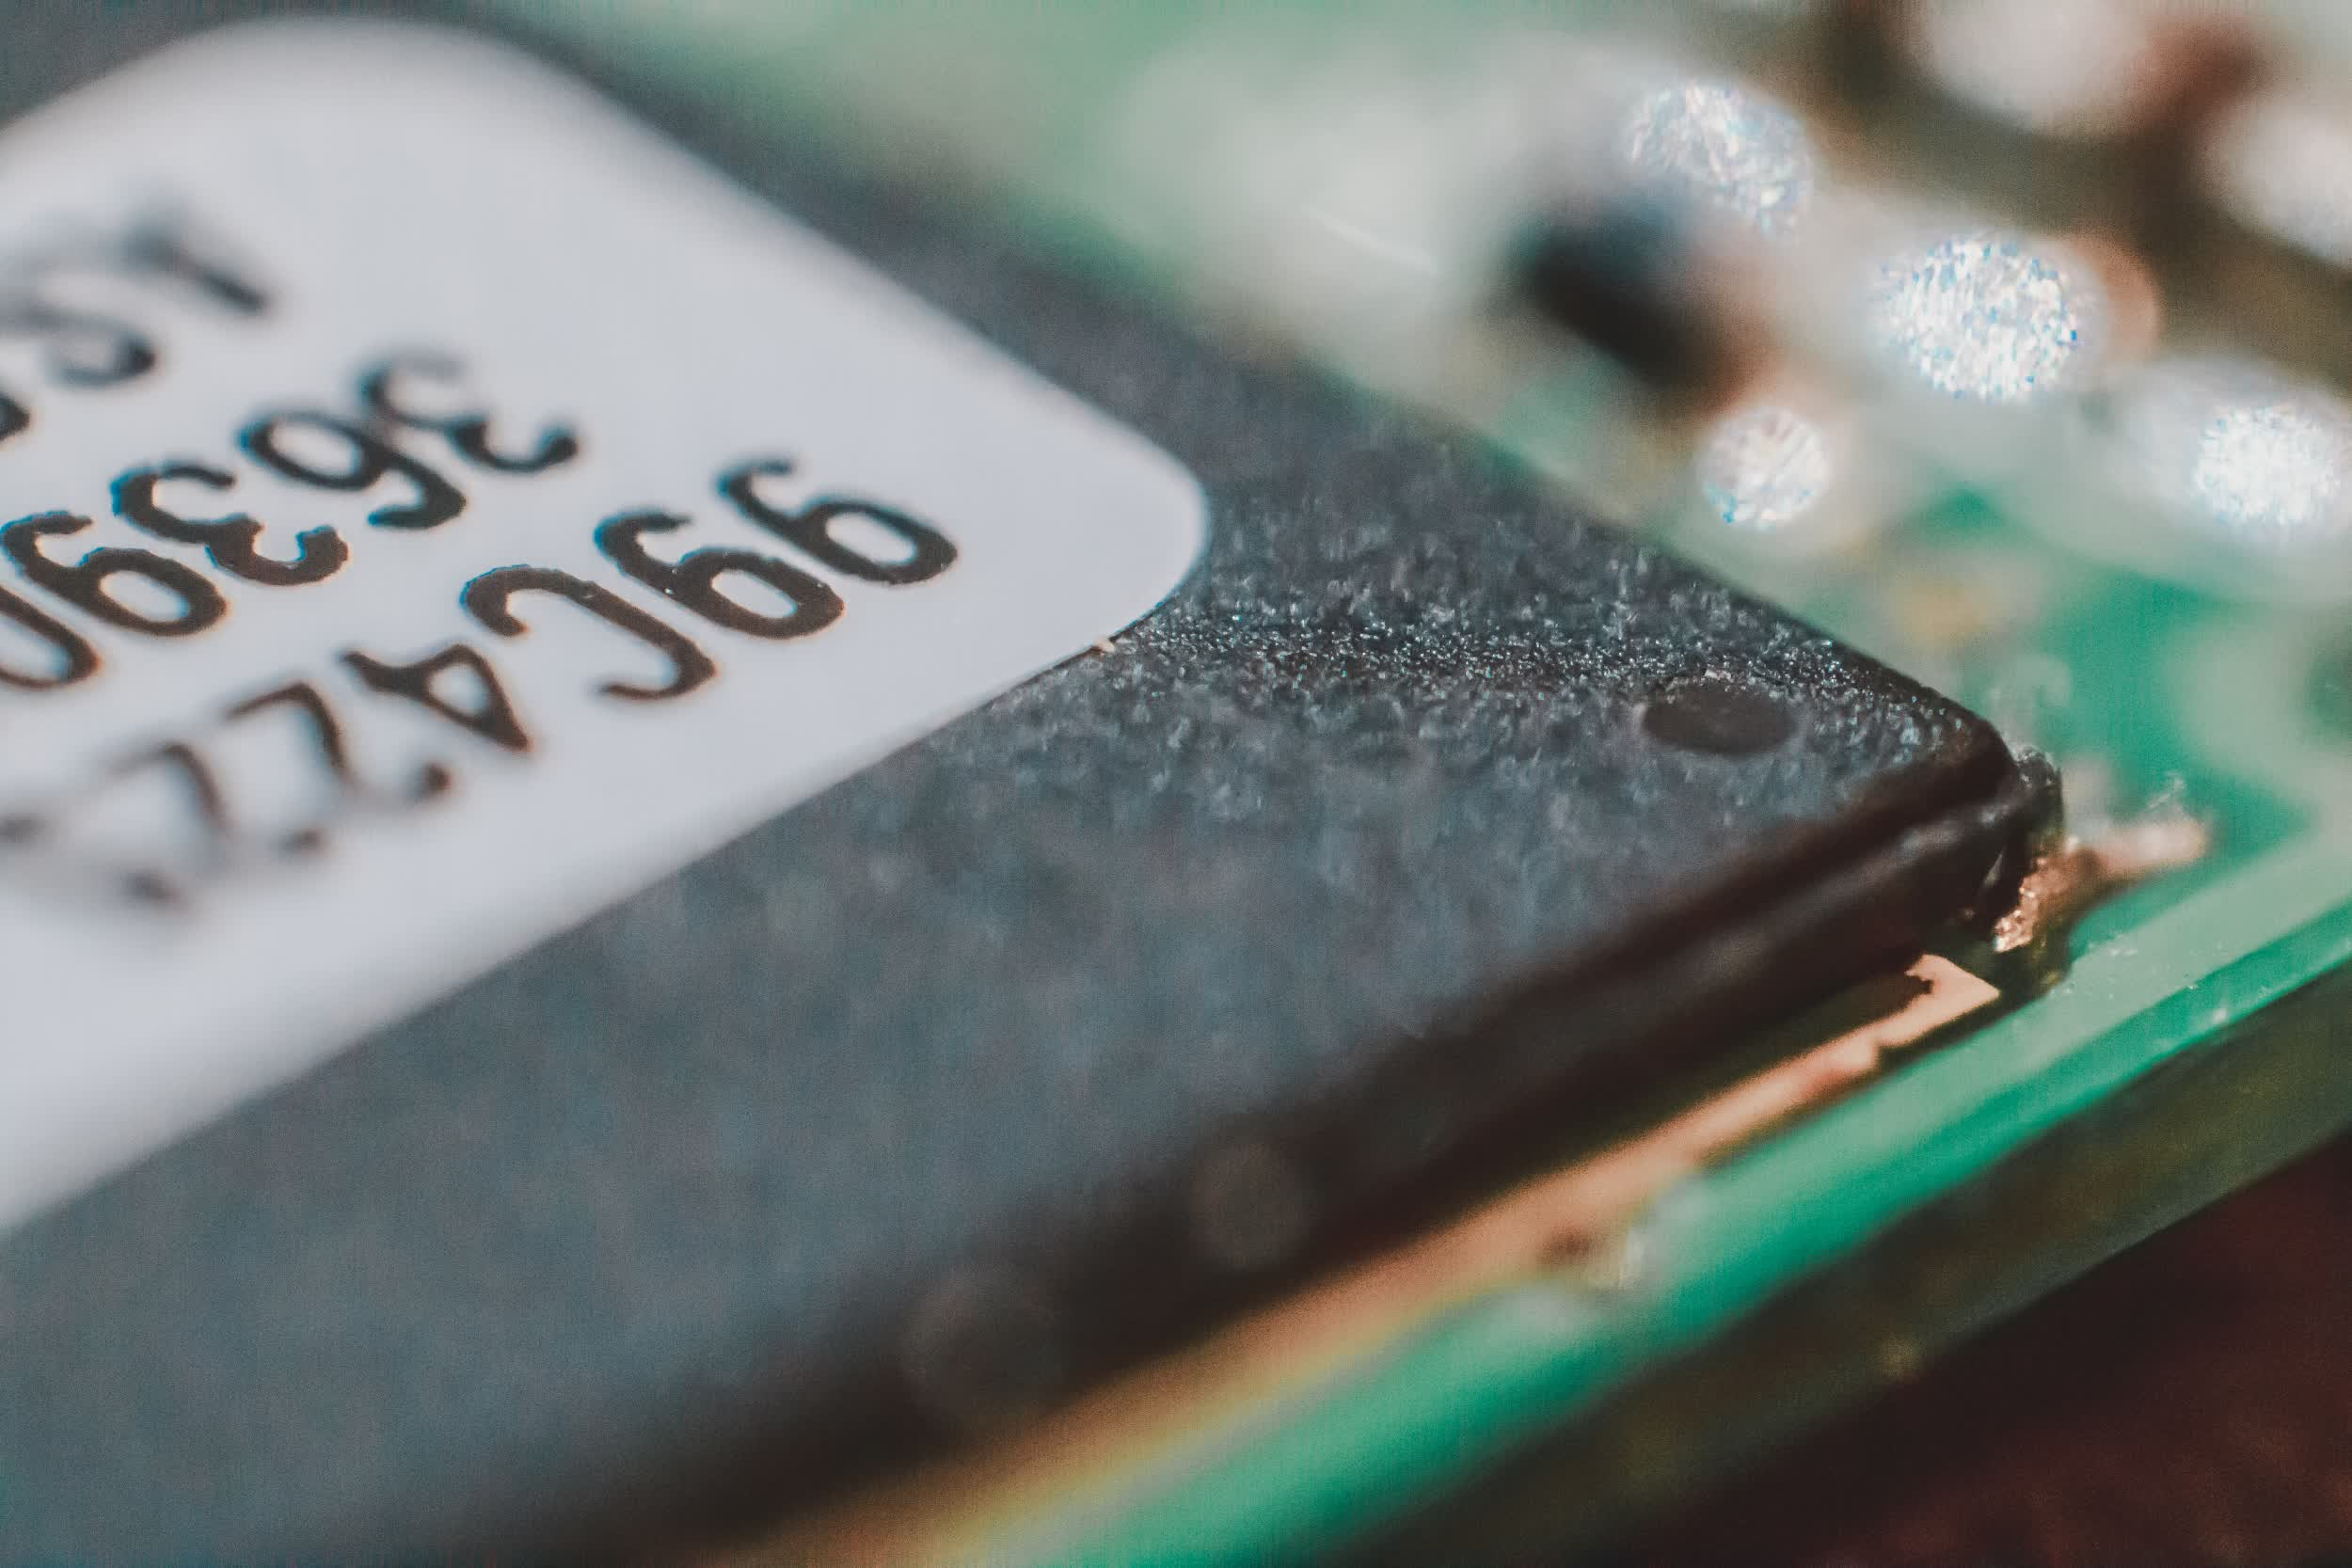 SSD prices could drop as much as 15 percent next quarter due to continued NAND flash oversupply